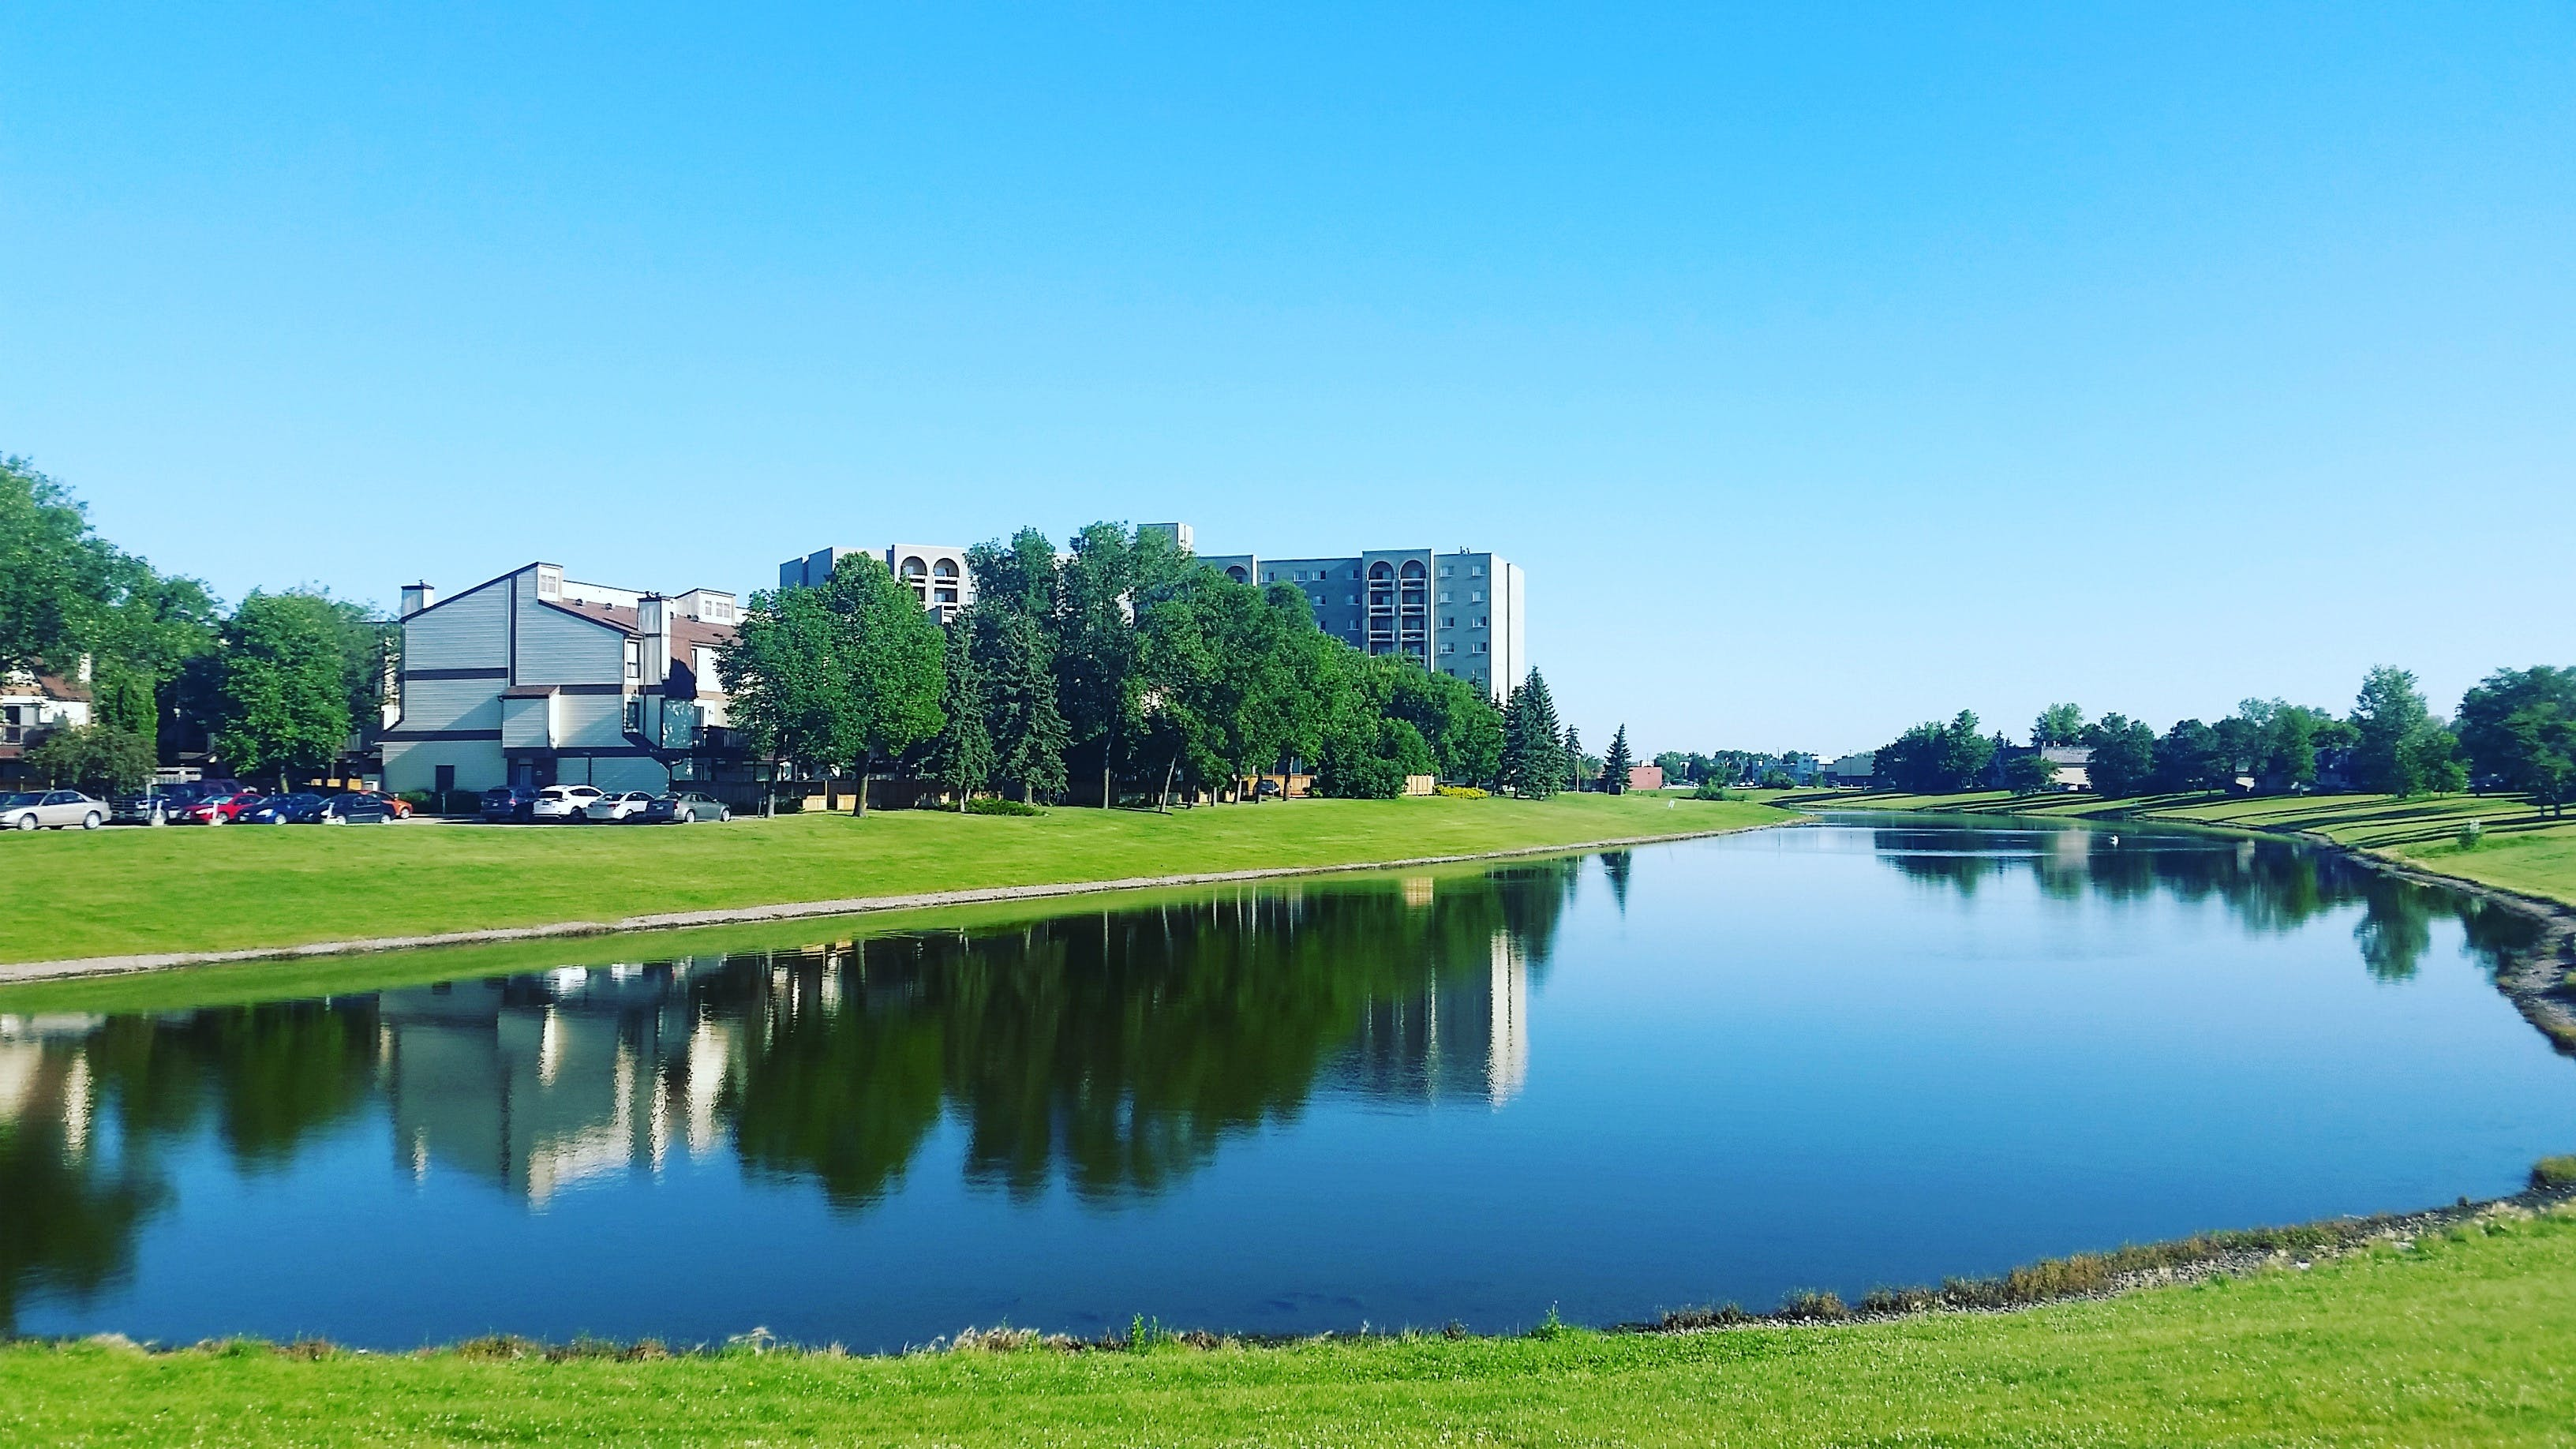 Body of Water Surrounded by Grass Near Buildings